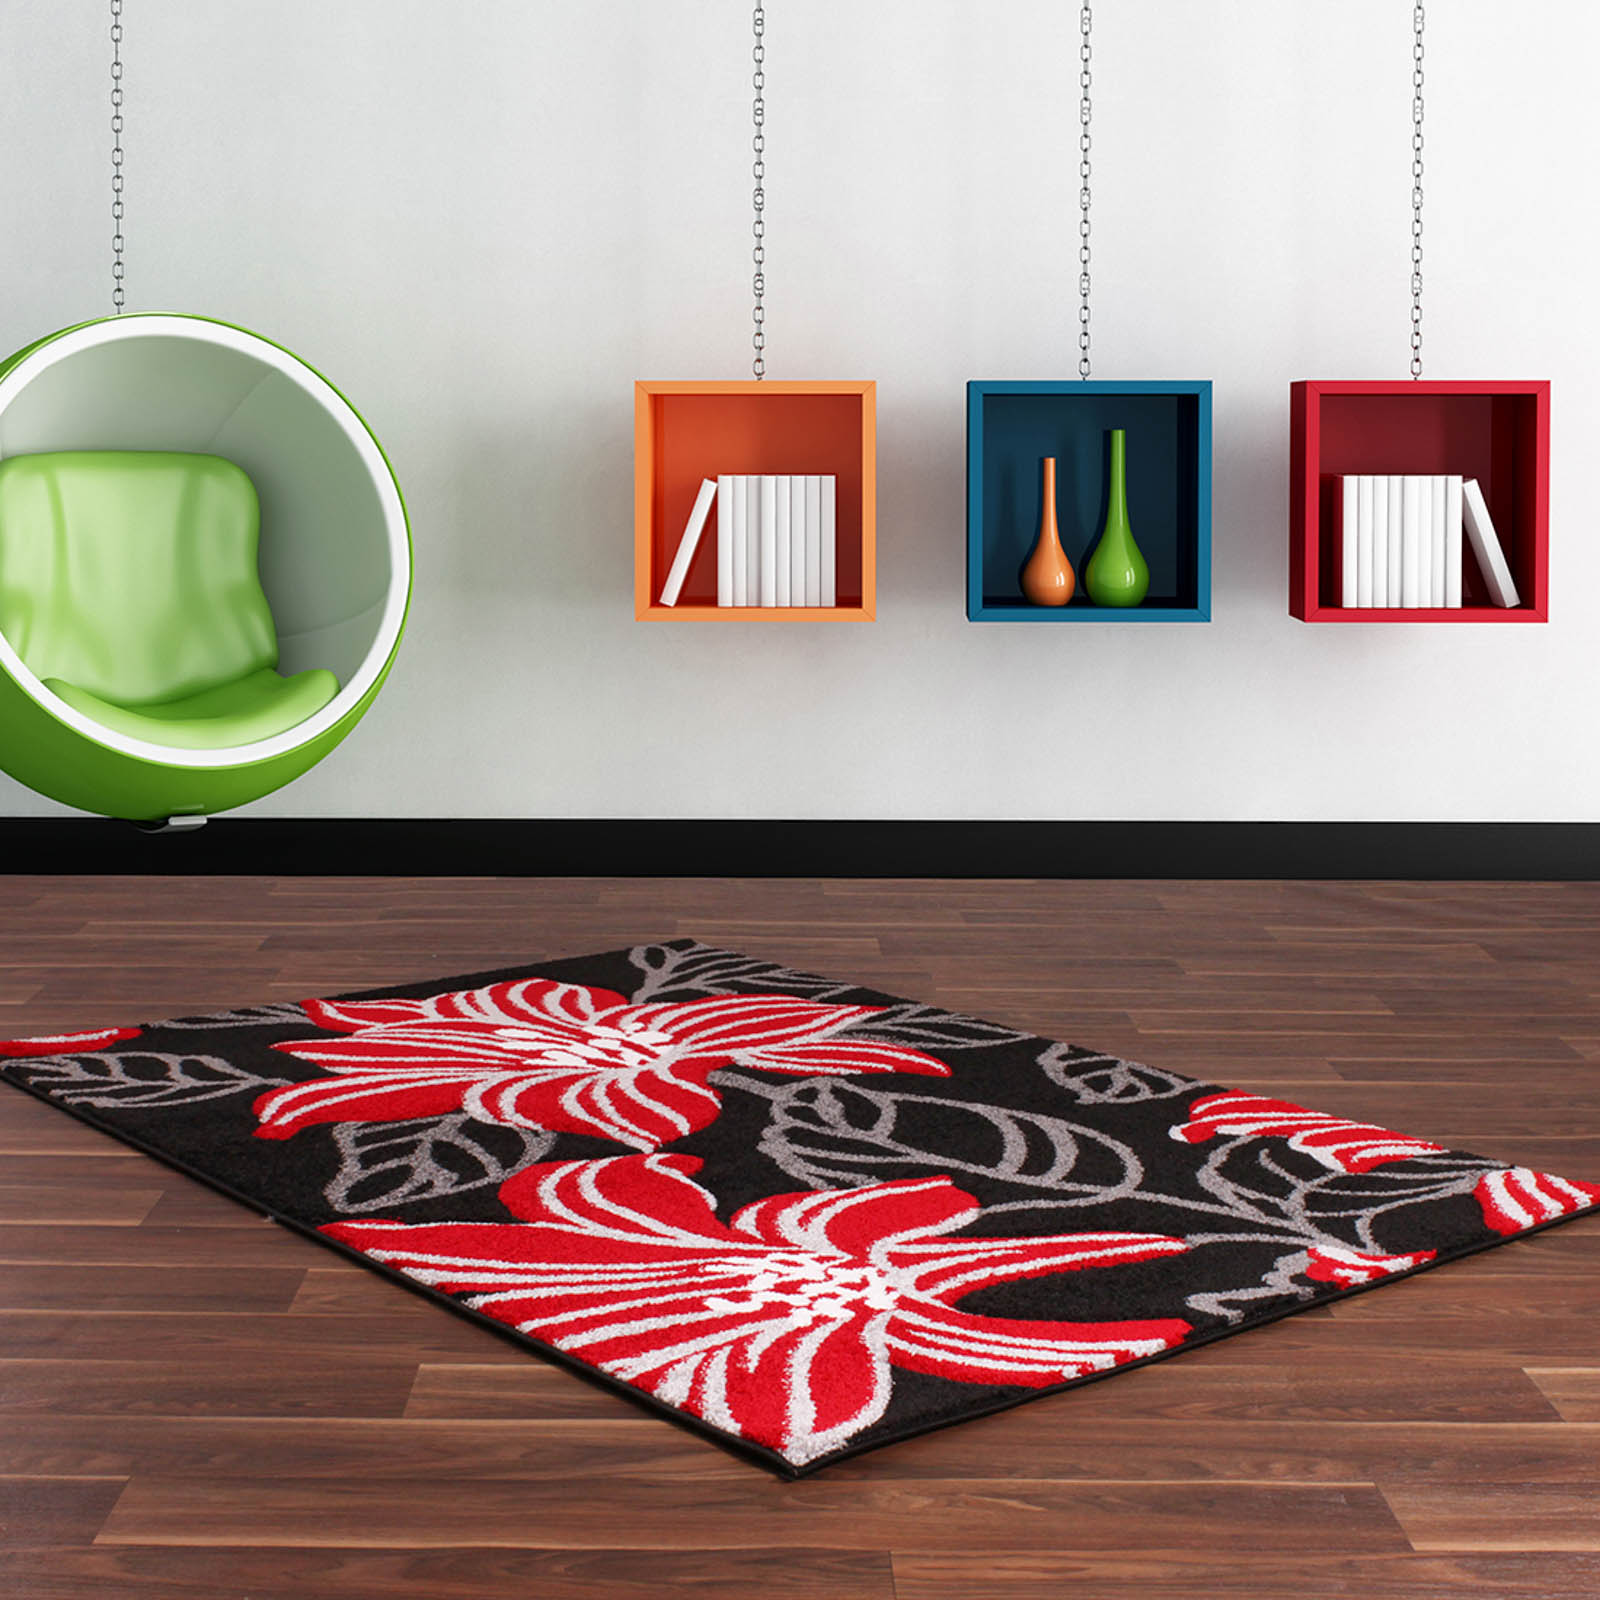 Rapello Botanic Rugs in Black and Red